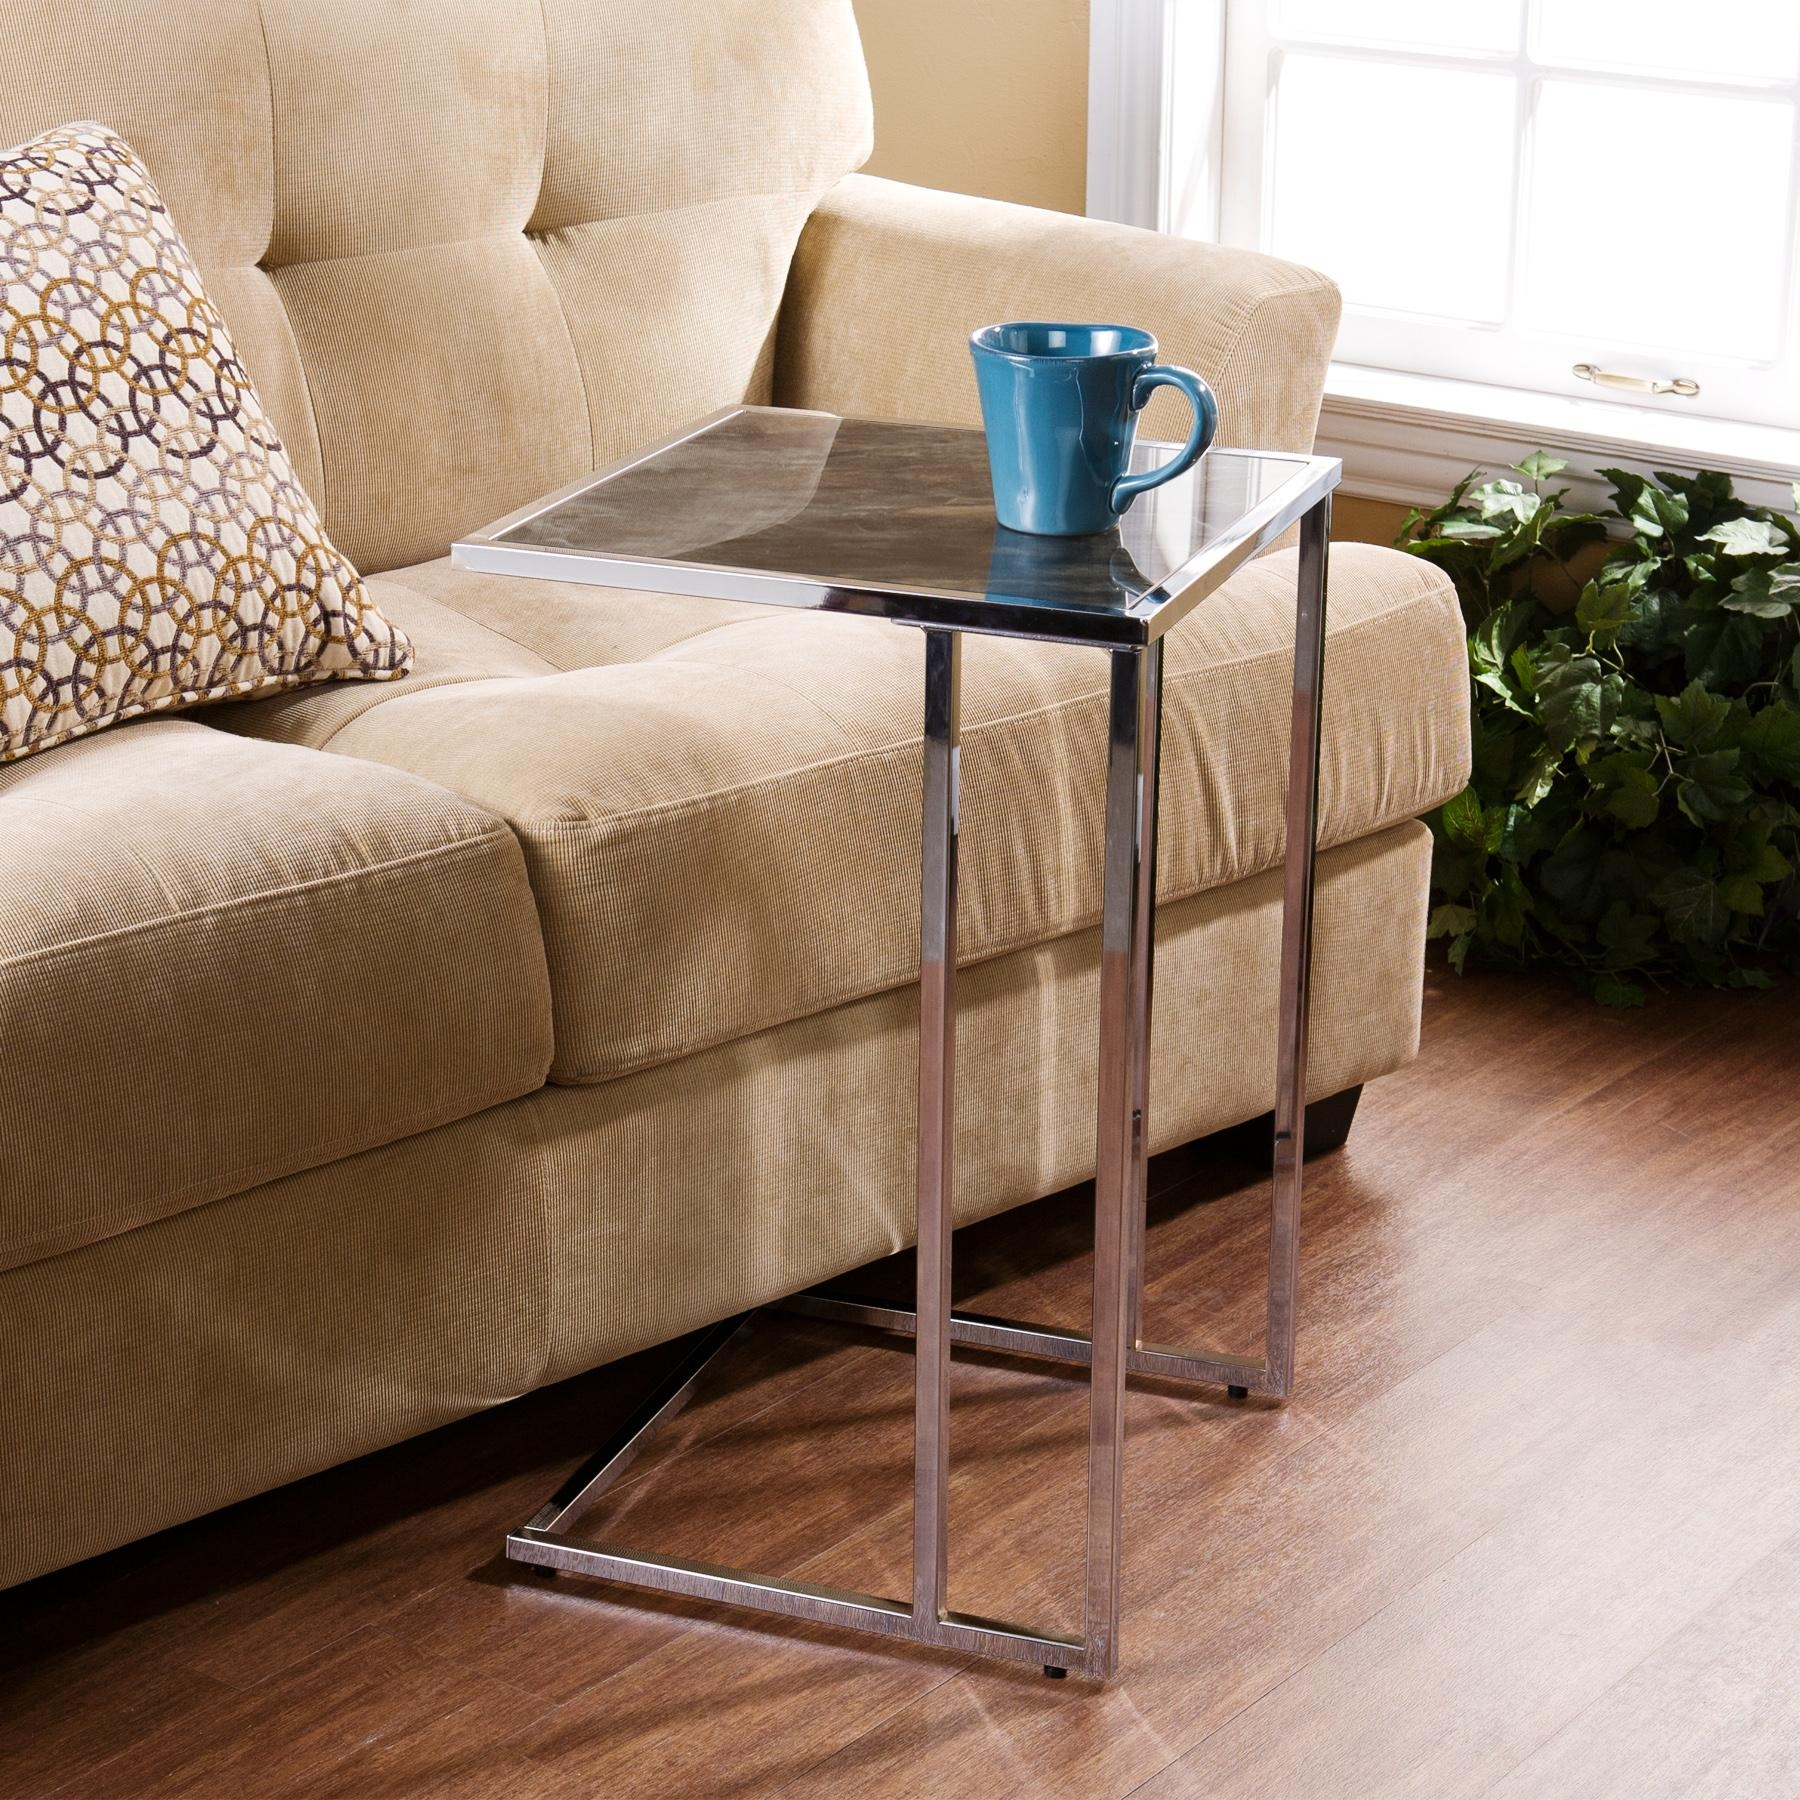 Attractive Snack Table With Slick Square Table Top Combined With Regard To Under Sofa Tray Tables (View 7 of 20)